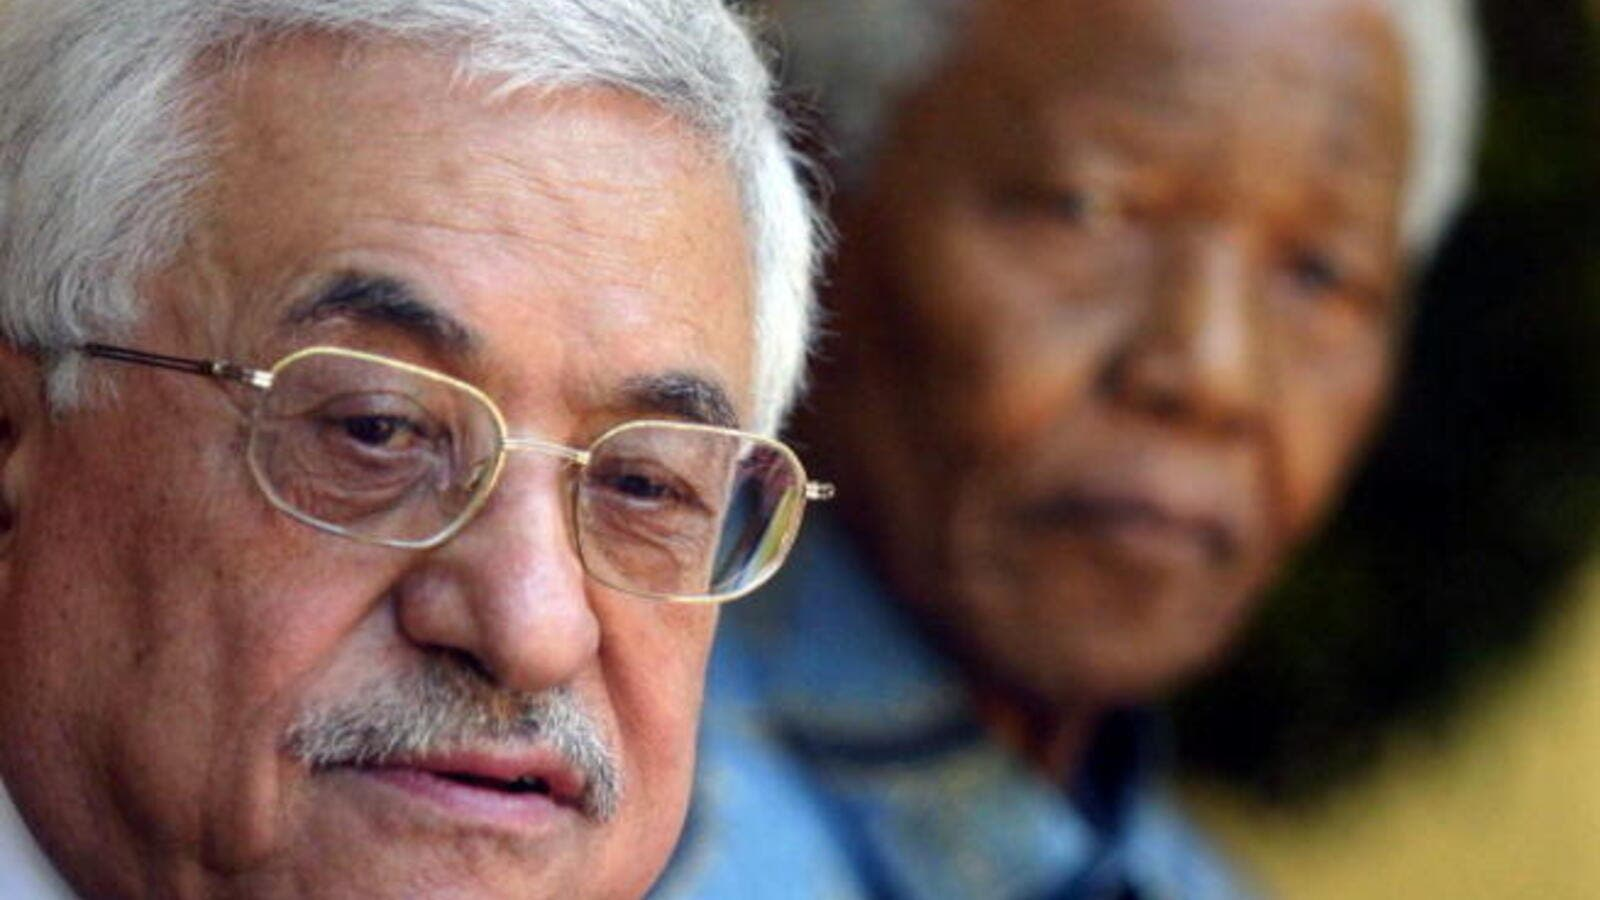 Palestinian Authority President Mahmoud Abbas and the former South African President Nelson Mandela pose at Mandela's house inJohannesburg 01 April 2006.Abbas said he considered Mandela as the father of all liberation movements. [Getty Images]